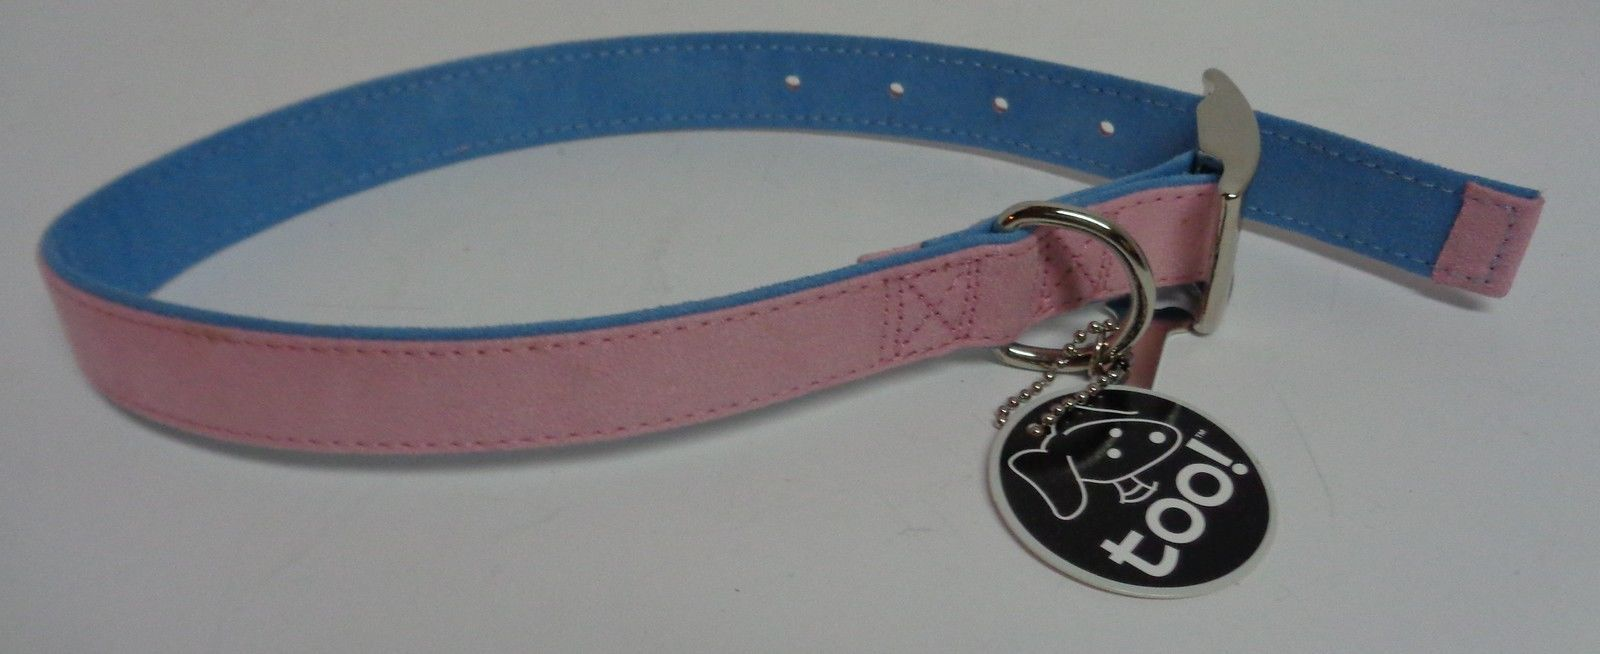 """Fancy Dog Collar NWT Adjustable 22"""" Large Size Breed Pink&Blue Soft Faux Leather"""